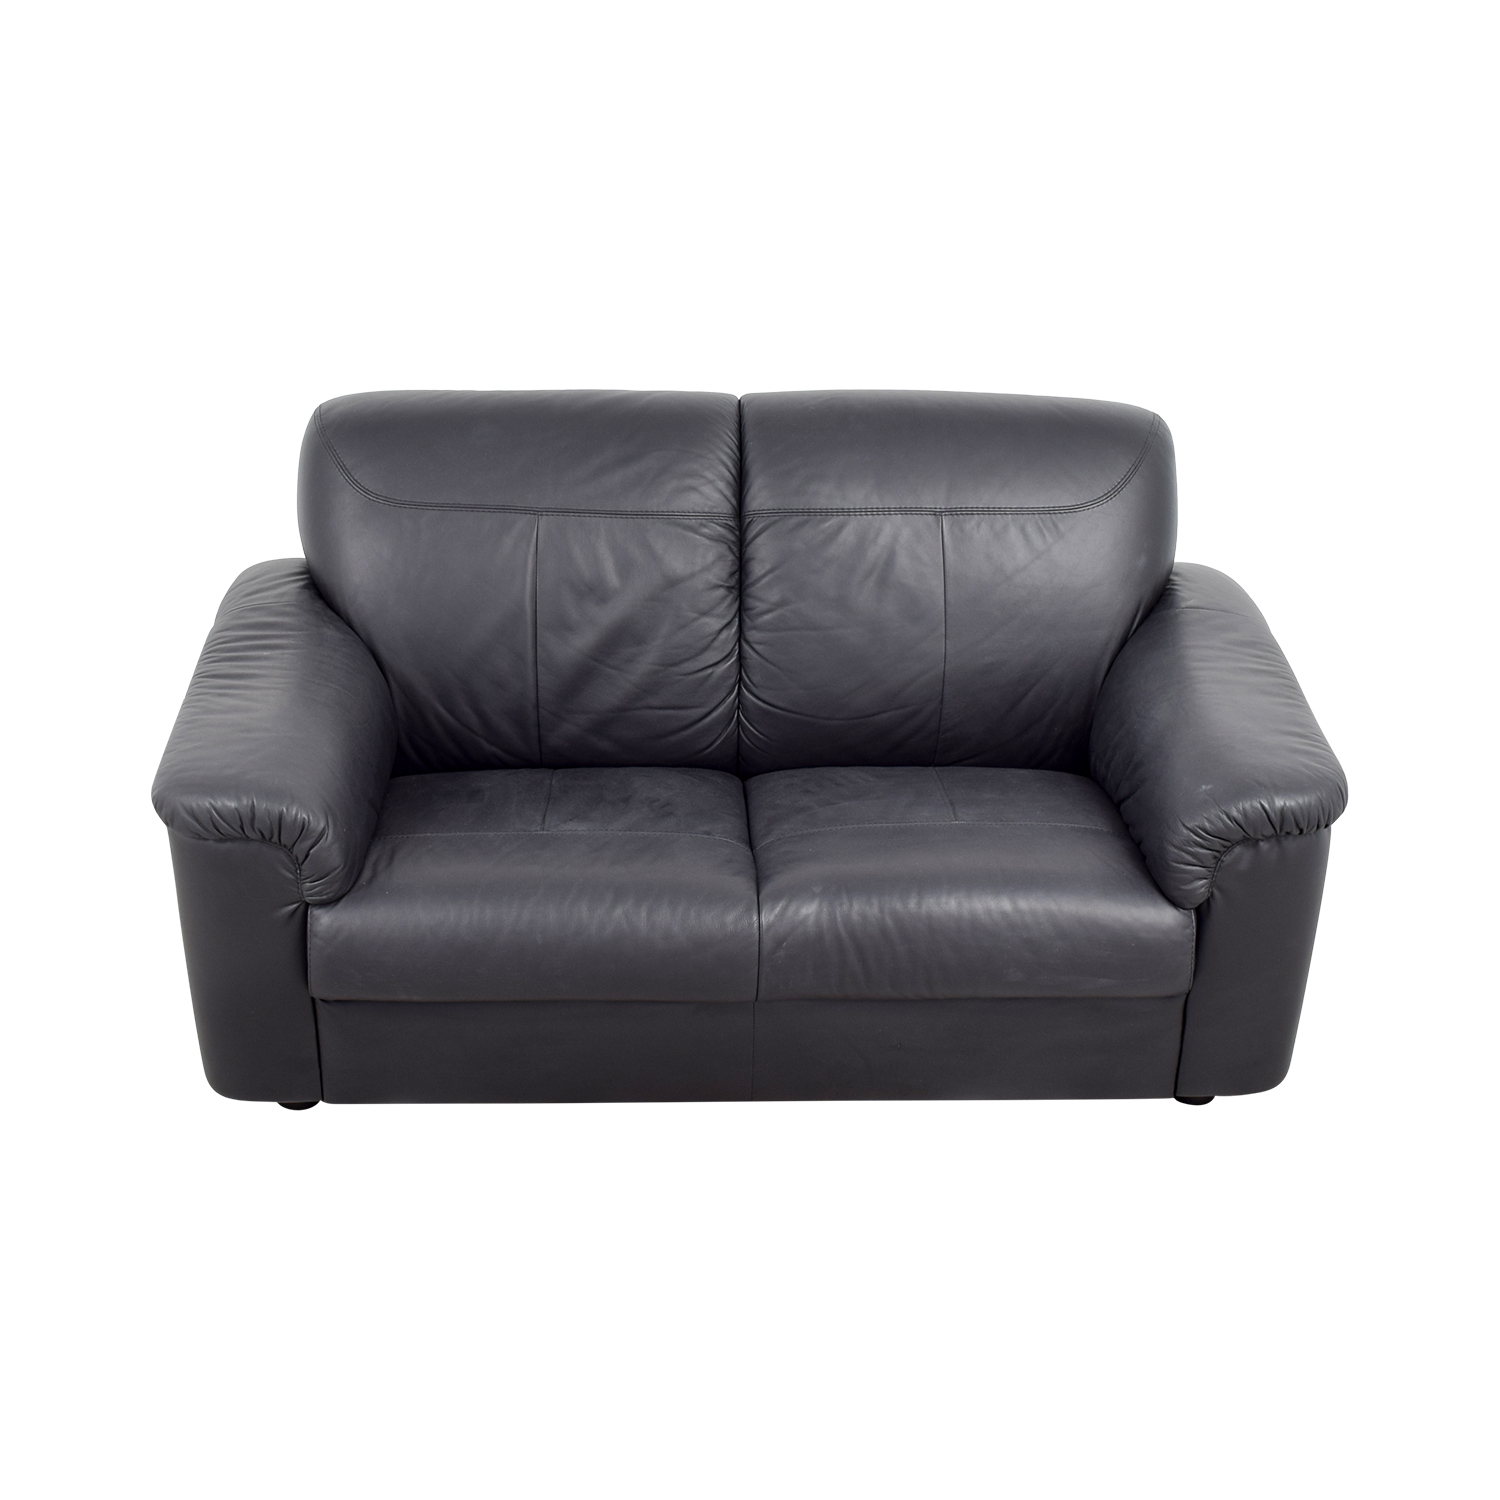 IKEA IKEA Black Leather Loveseat with Pillowed Arms price